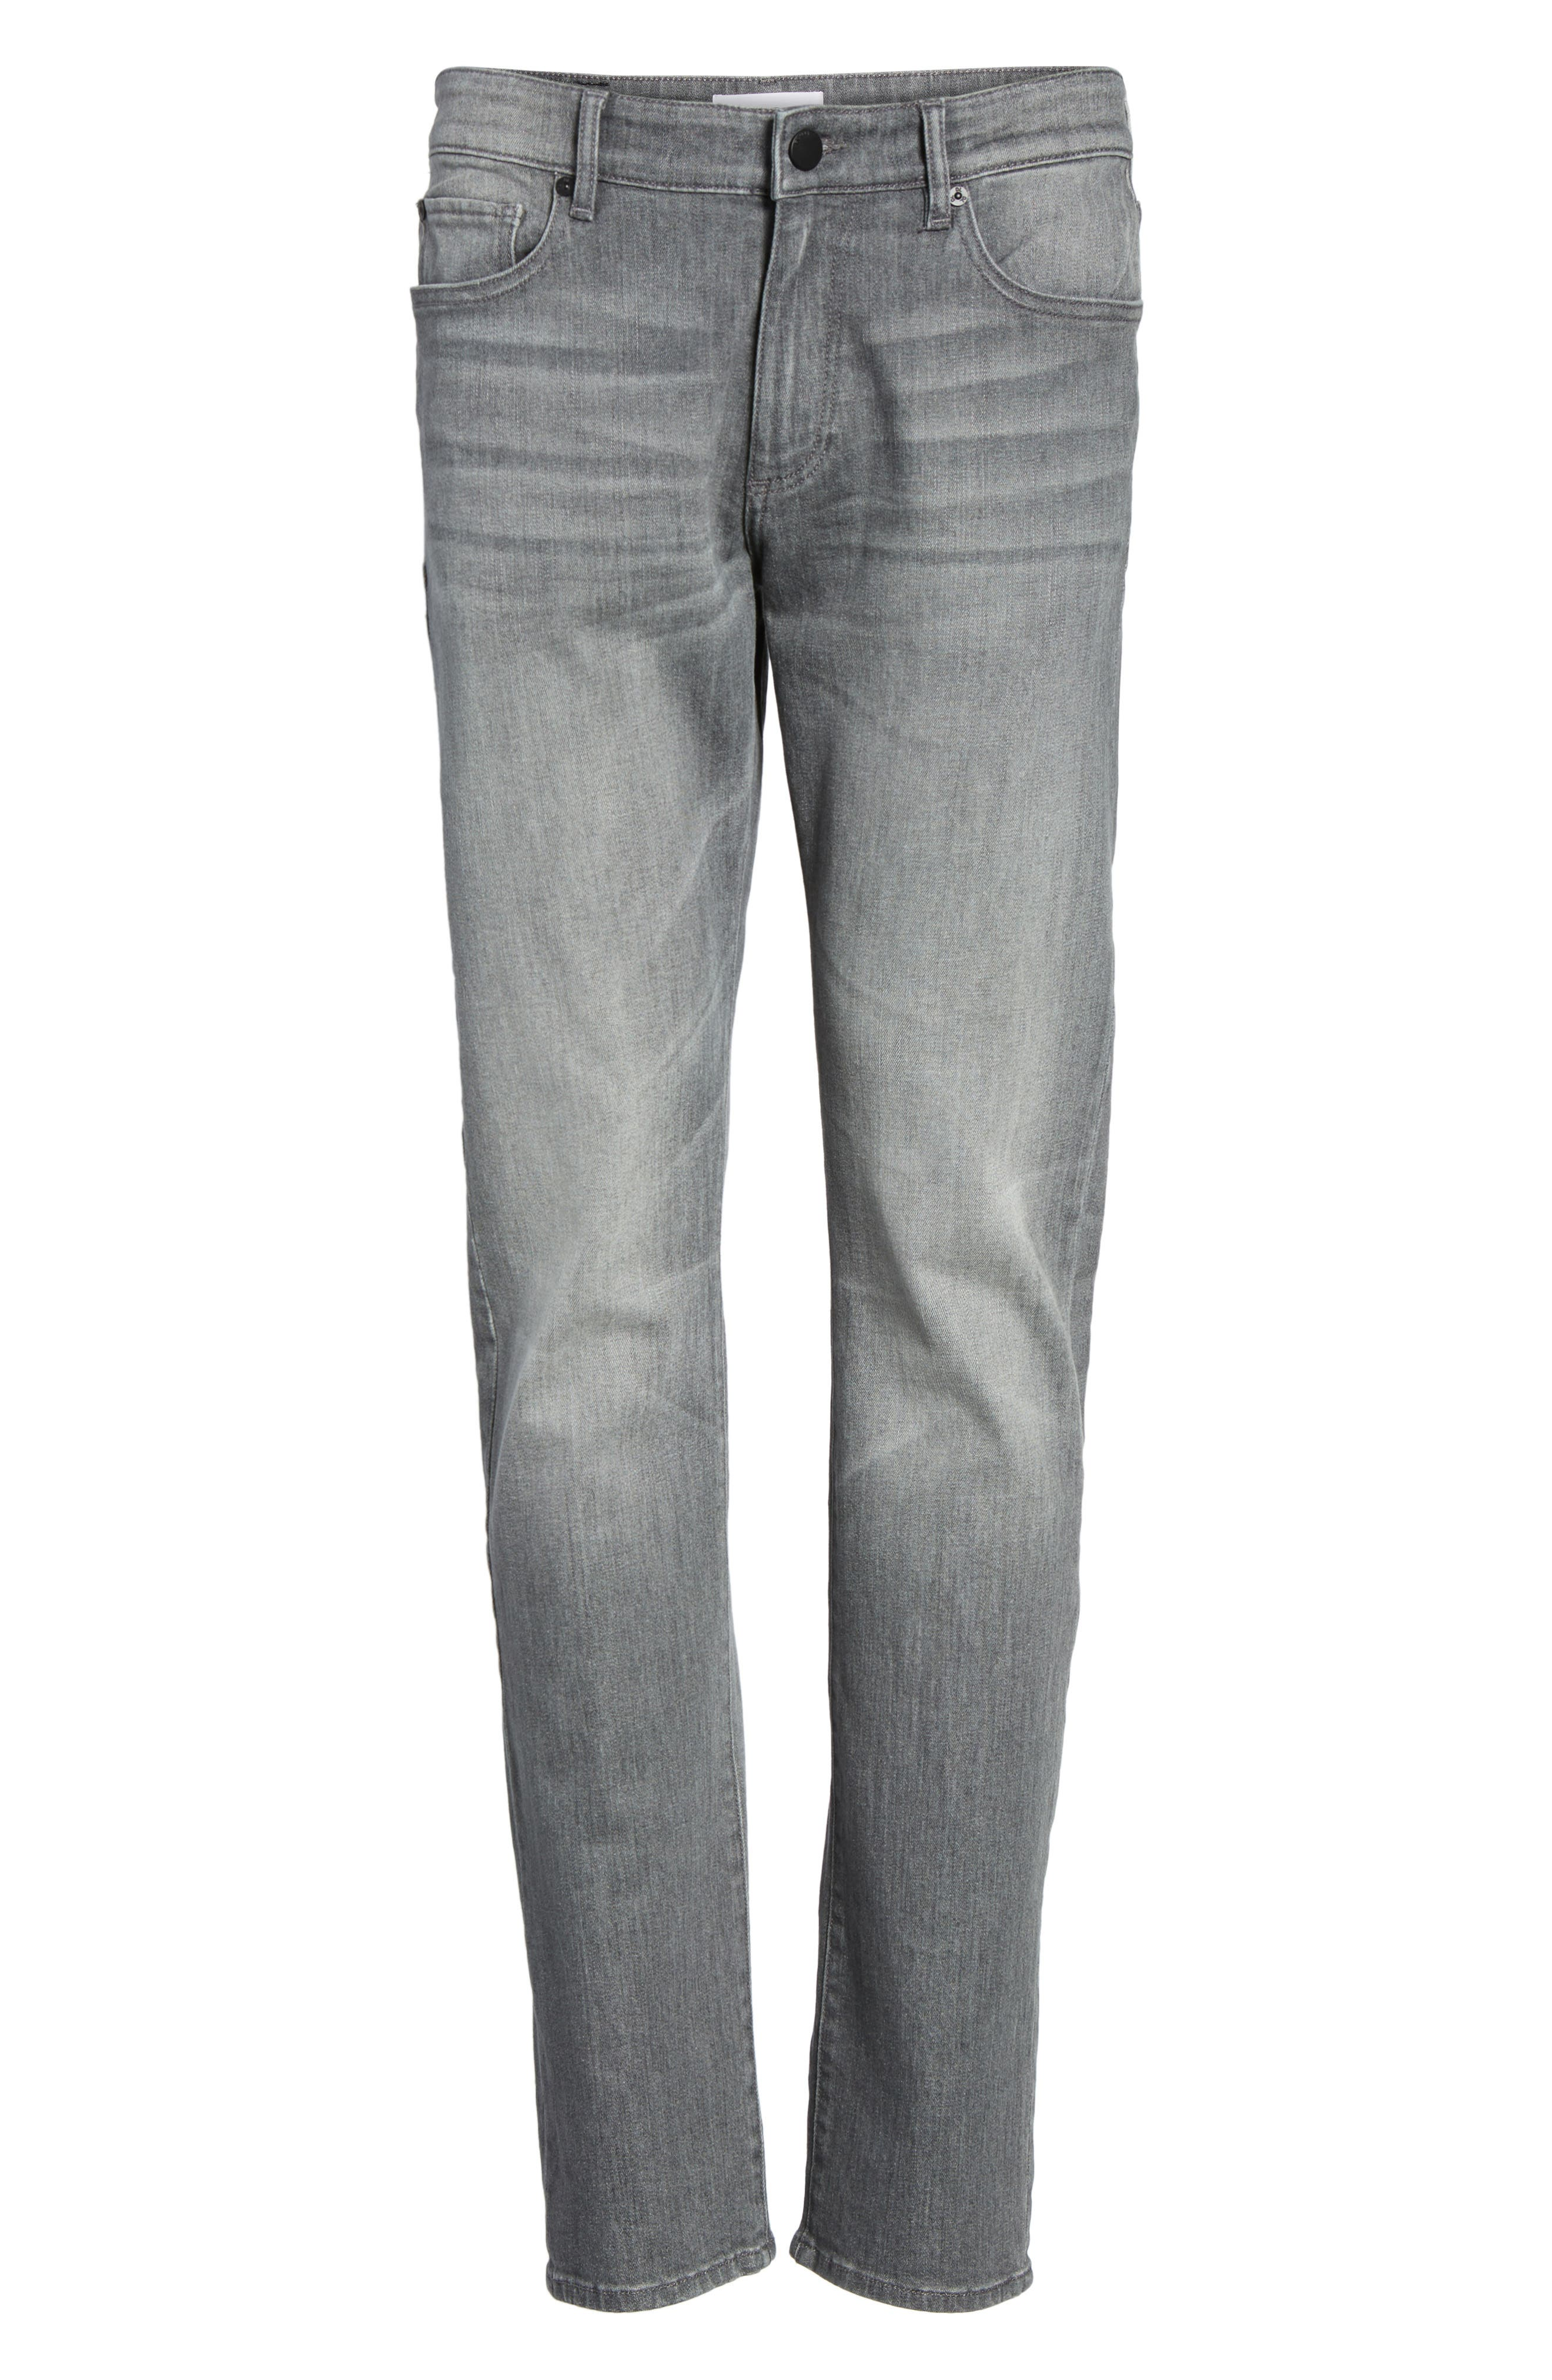 Russell Slim Straight Fit Jeans,                             Alternate thumbnail 6, color,                             020